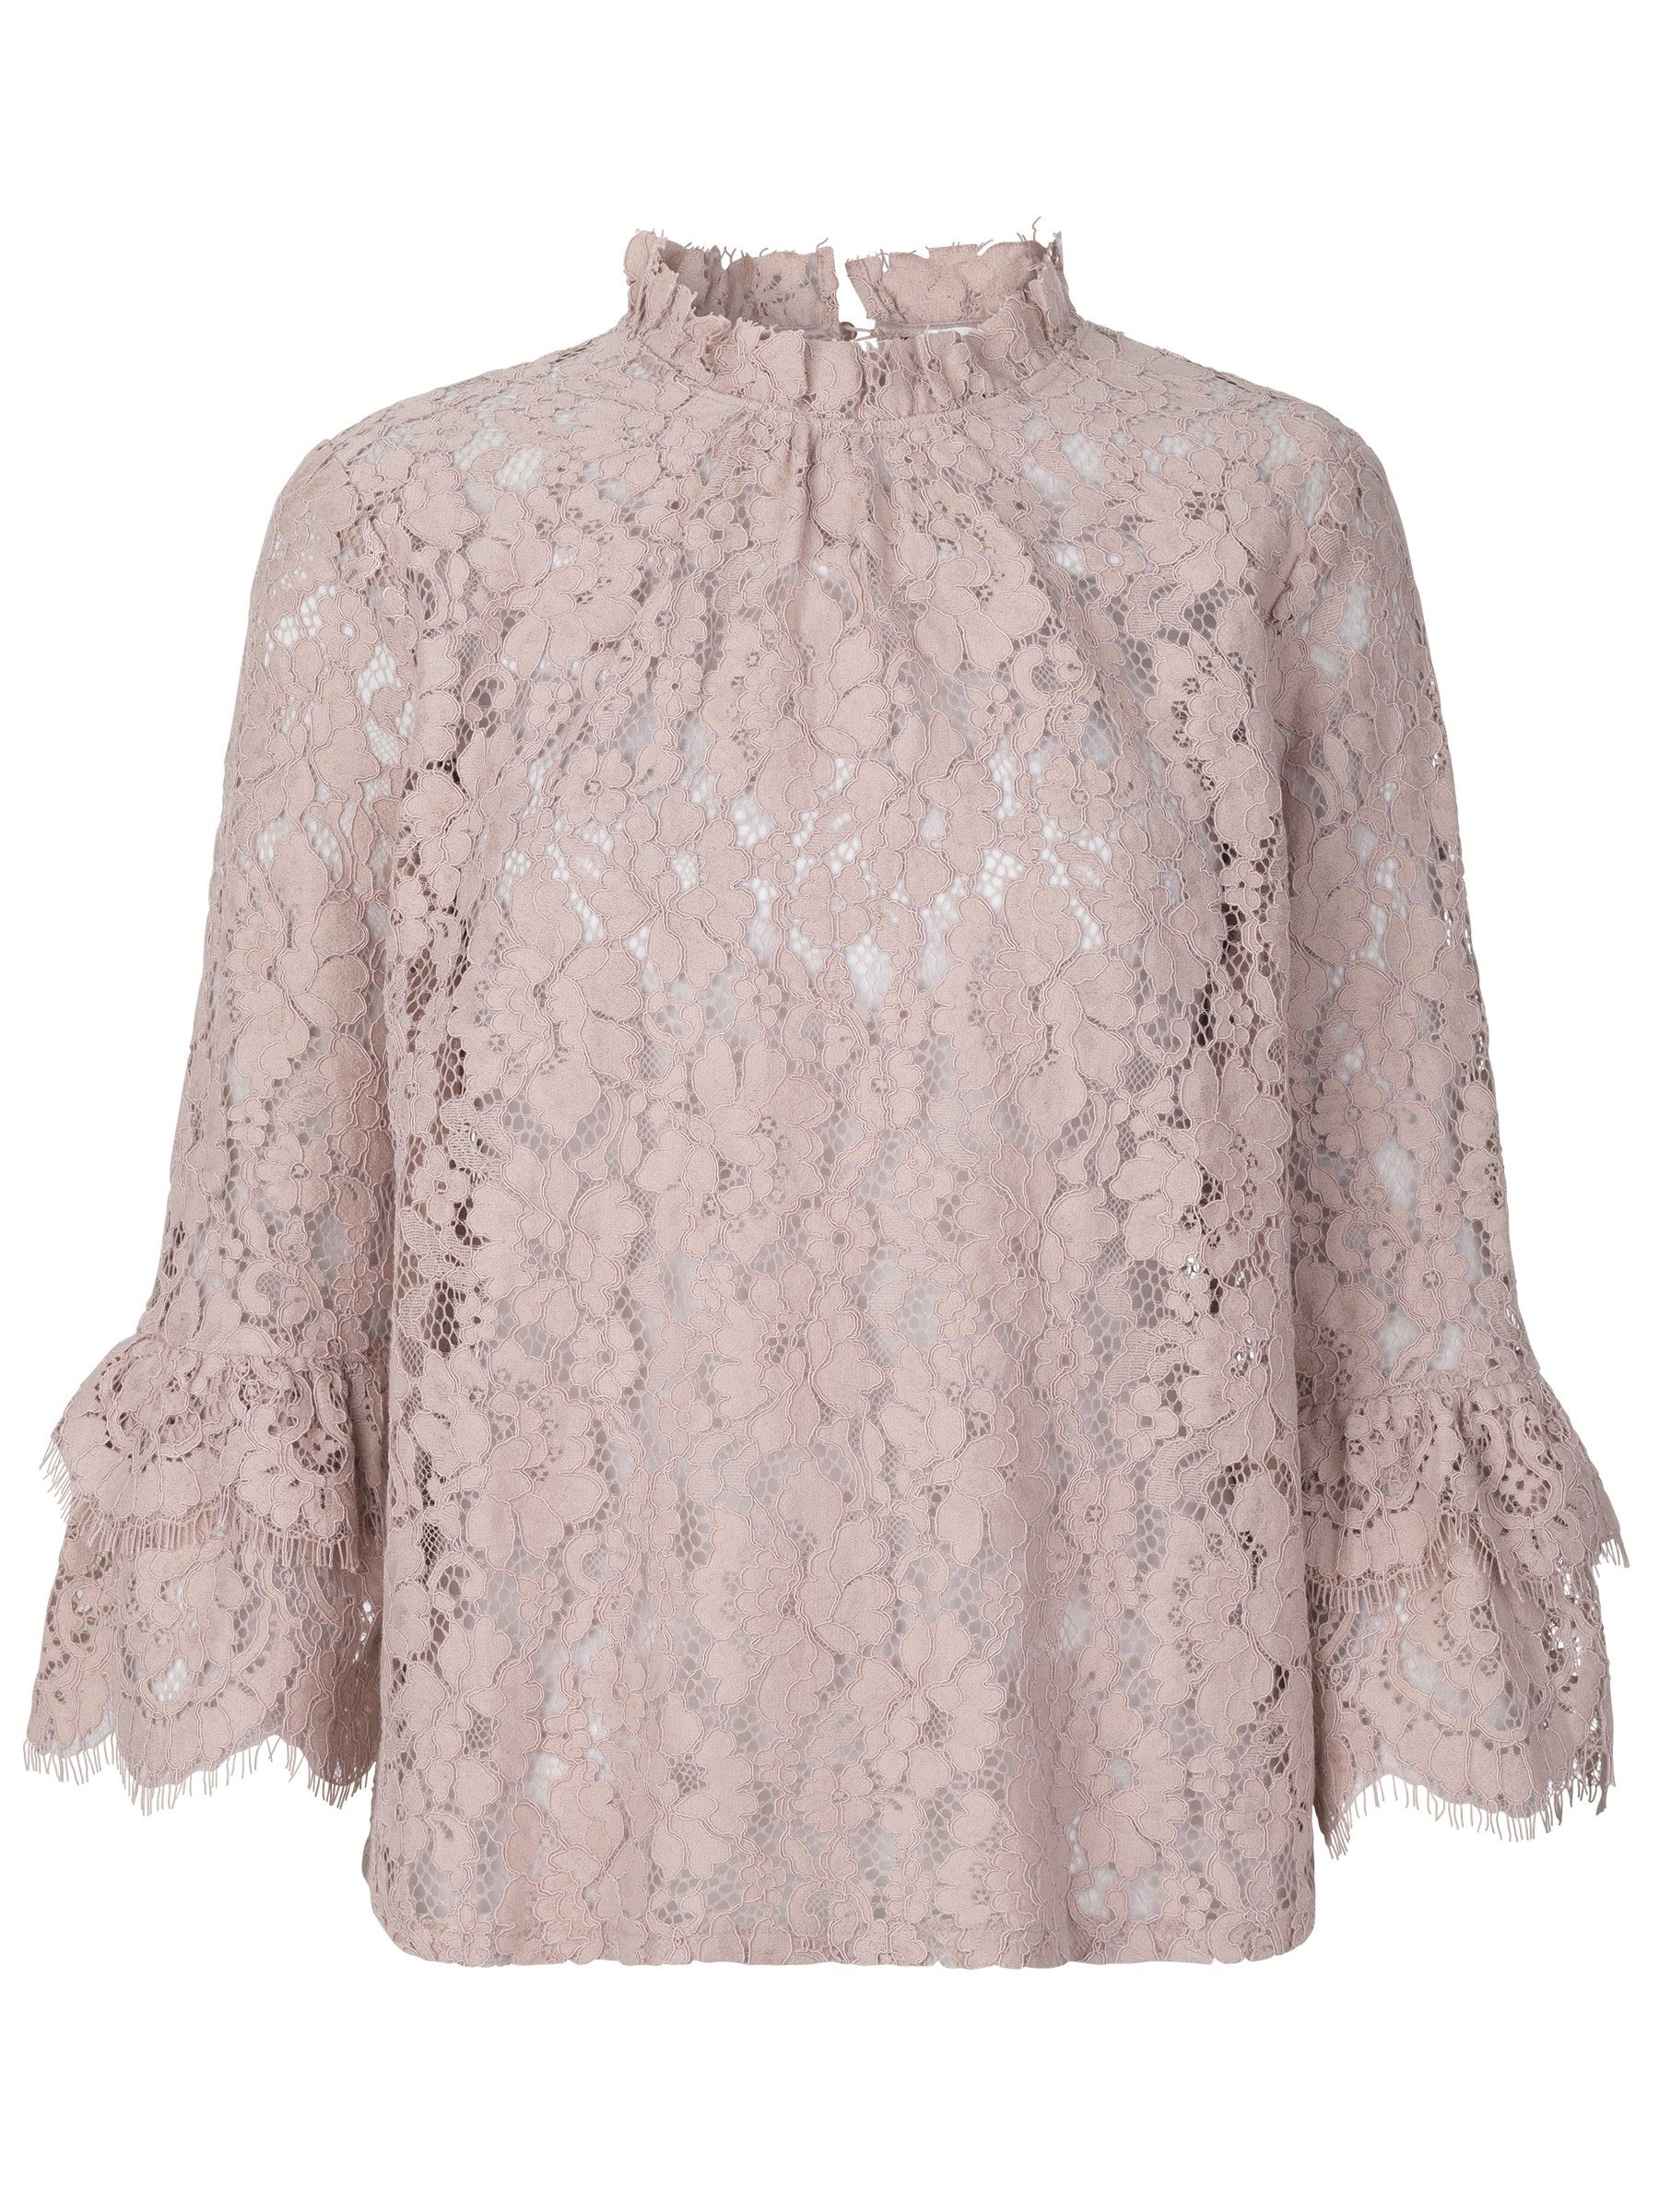 ROSEMUNDE - Damen Bluse - Blouse 3/4 Sleeve - Vintage Powder